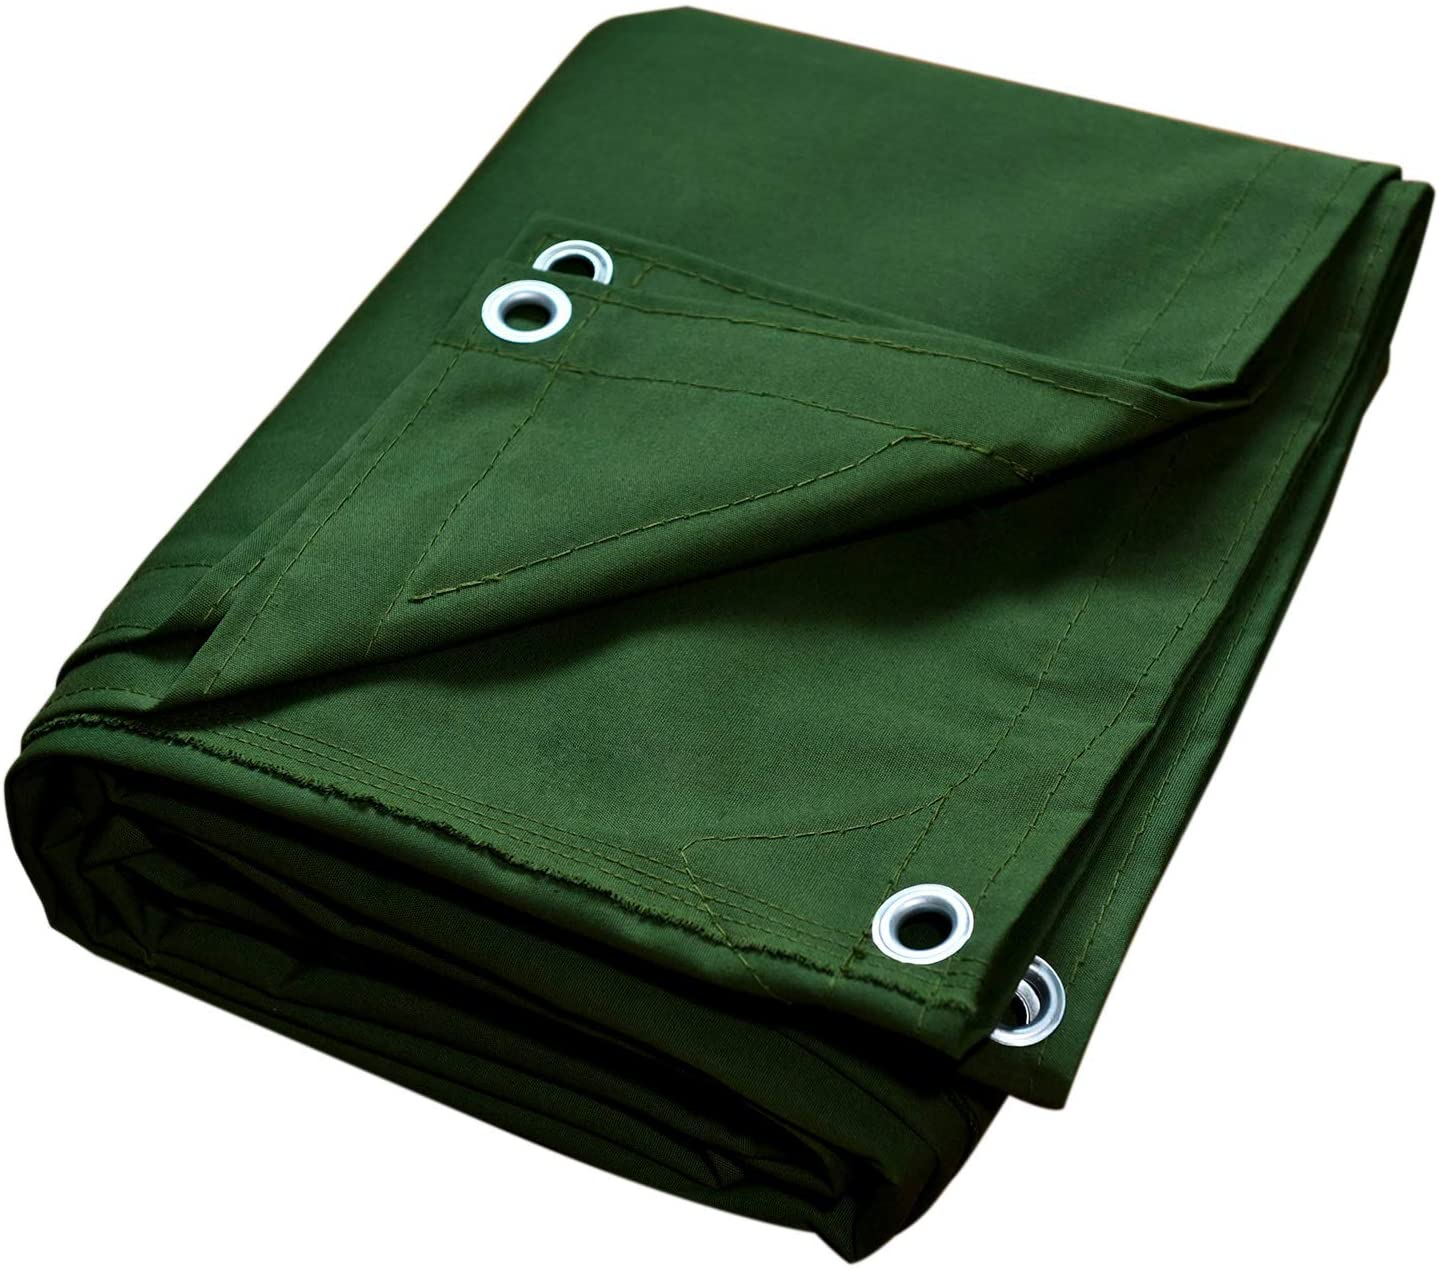 Canvas Tarps Truck Tarp Water Resistant UV Resistant 10 OZ Heavy Duty Tarpaulin Cover for Car Boat Camping Firewood Woodpile, 8x10 Feet